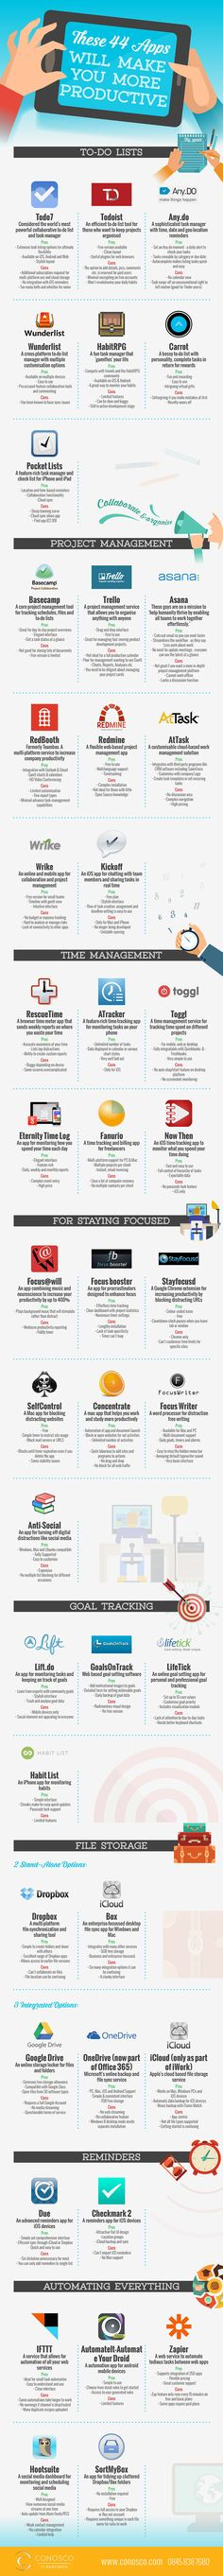 These 44 Apps Will Make You More Productive!  Toggl is my personal fave!